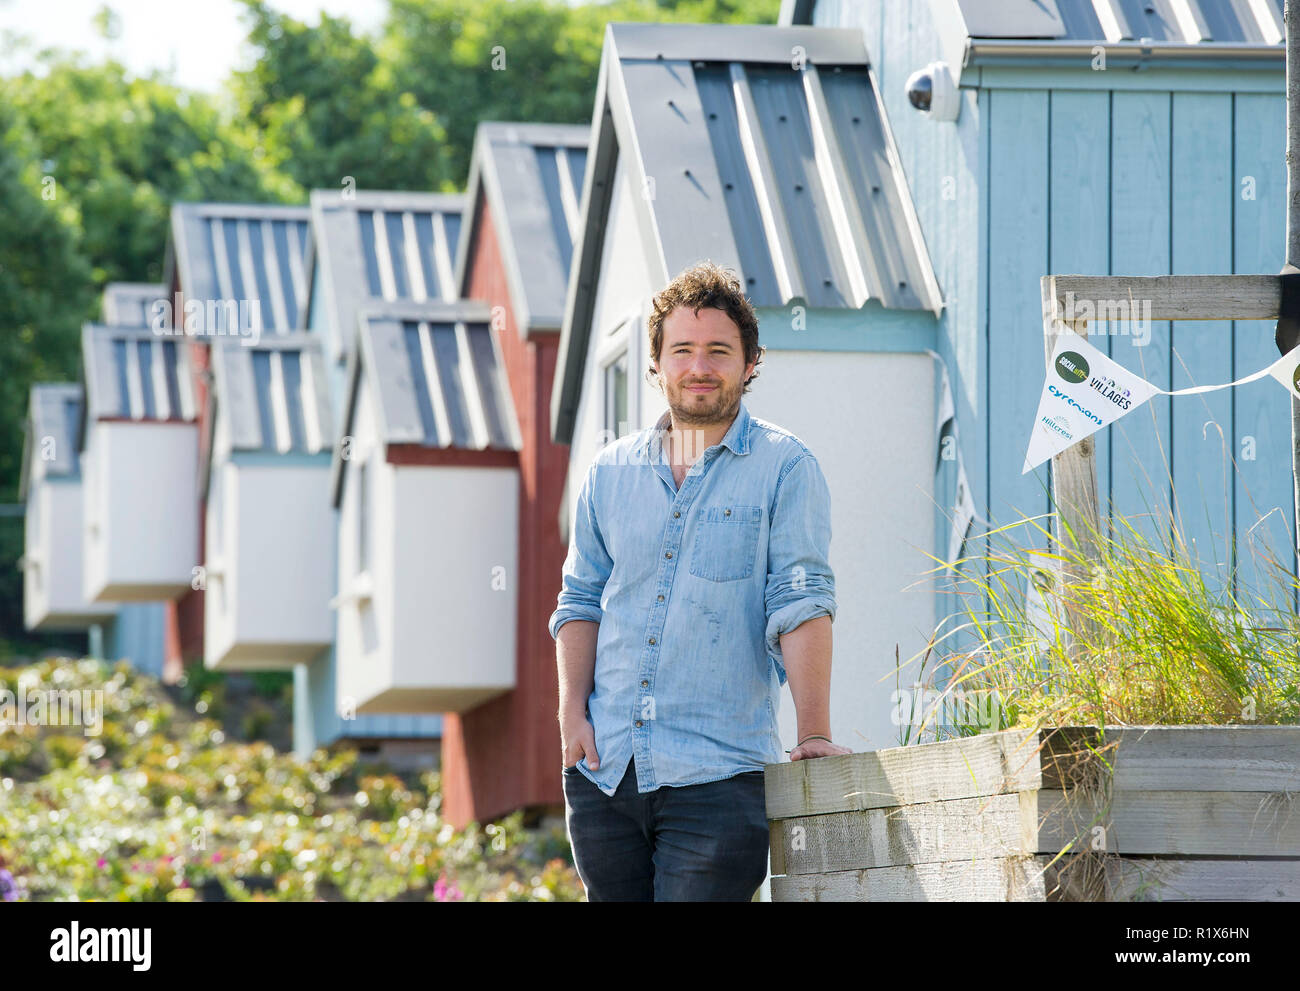 Josh Littlejohn pictured at the Social Bite village, Granton, Edinburgh - Stock Image